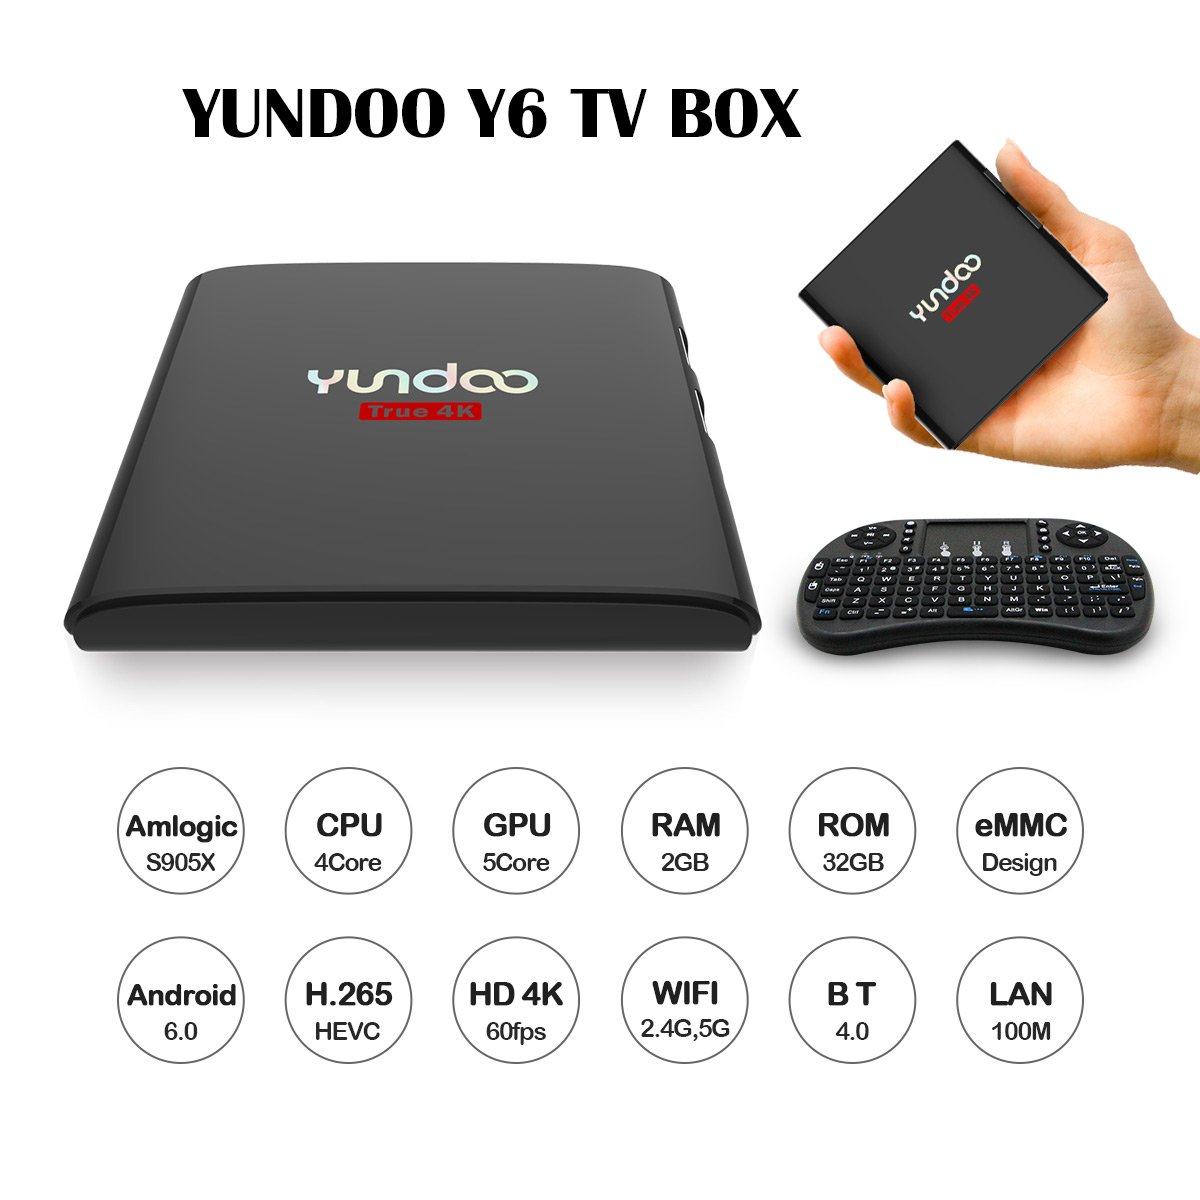 4K TV Box YUNDOO Y6 Android 6.0 2G RAM 32G ROM Smart Tv Box Amlogic S905X Media Player Support HDR VP9 HEVC BT4.0 DLNA 2.4G 5G Wifi with I8 Mini Keyboard